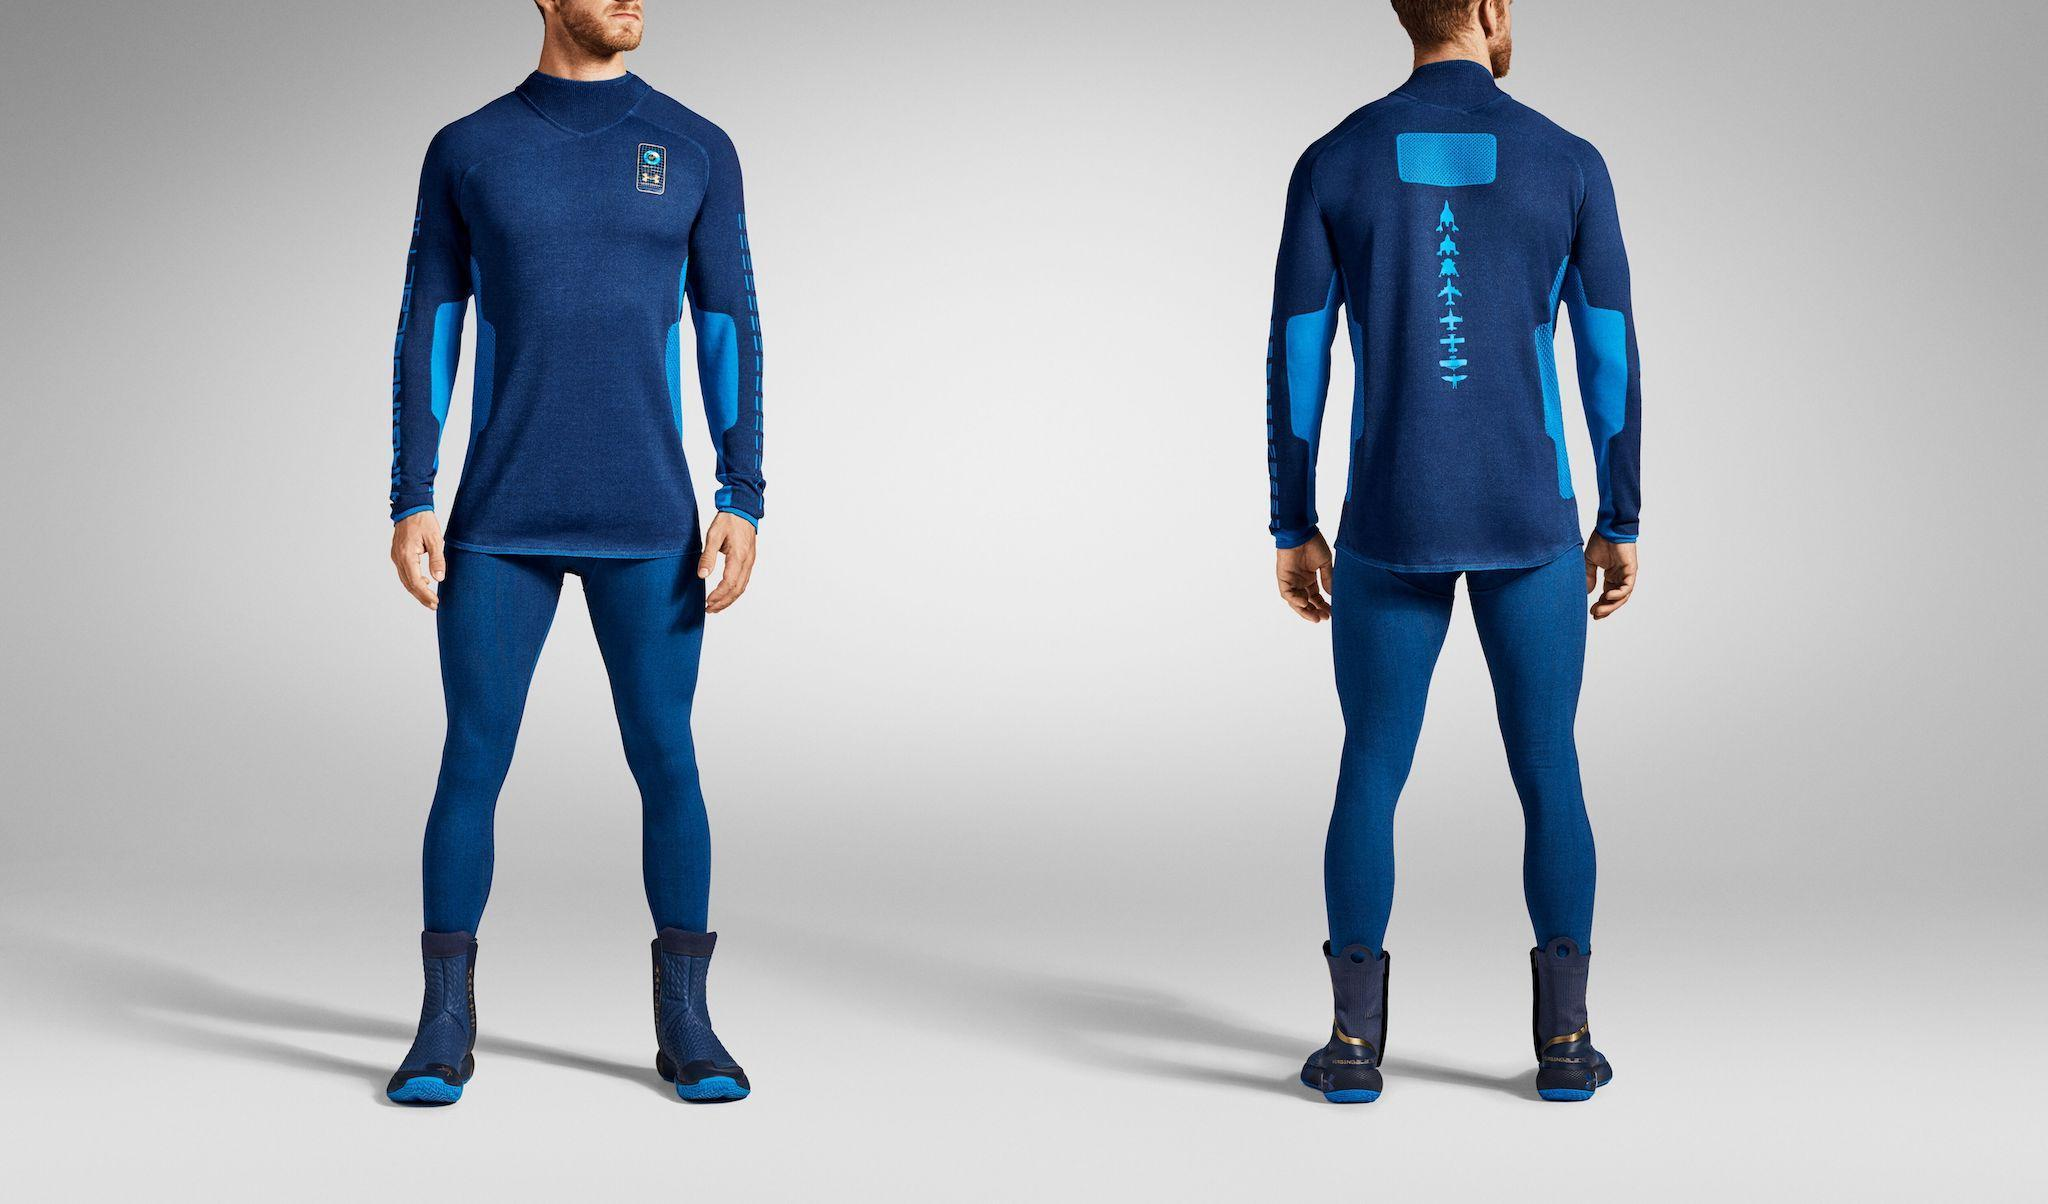 Virgin Galactic reveals Under Armour suits for space tourists – and promises they can take them home